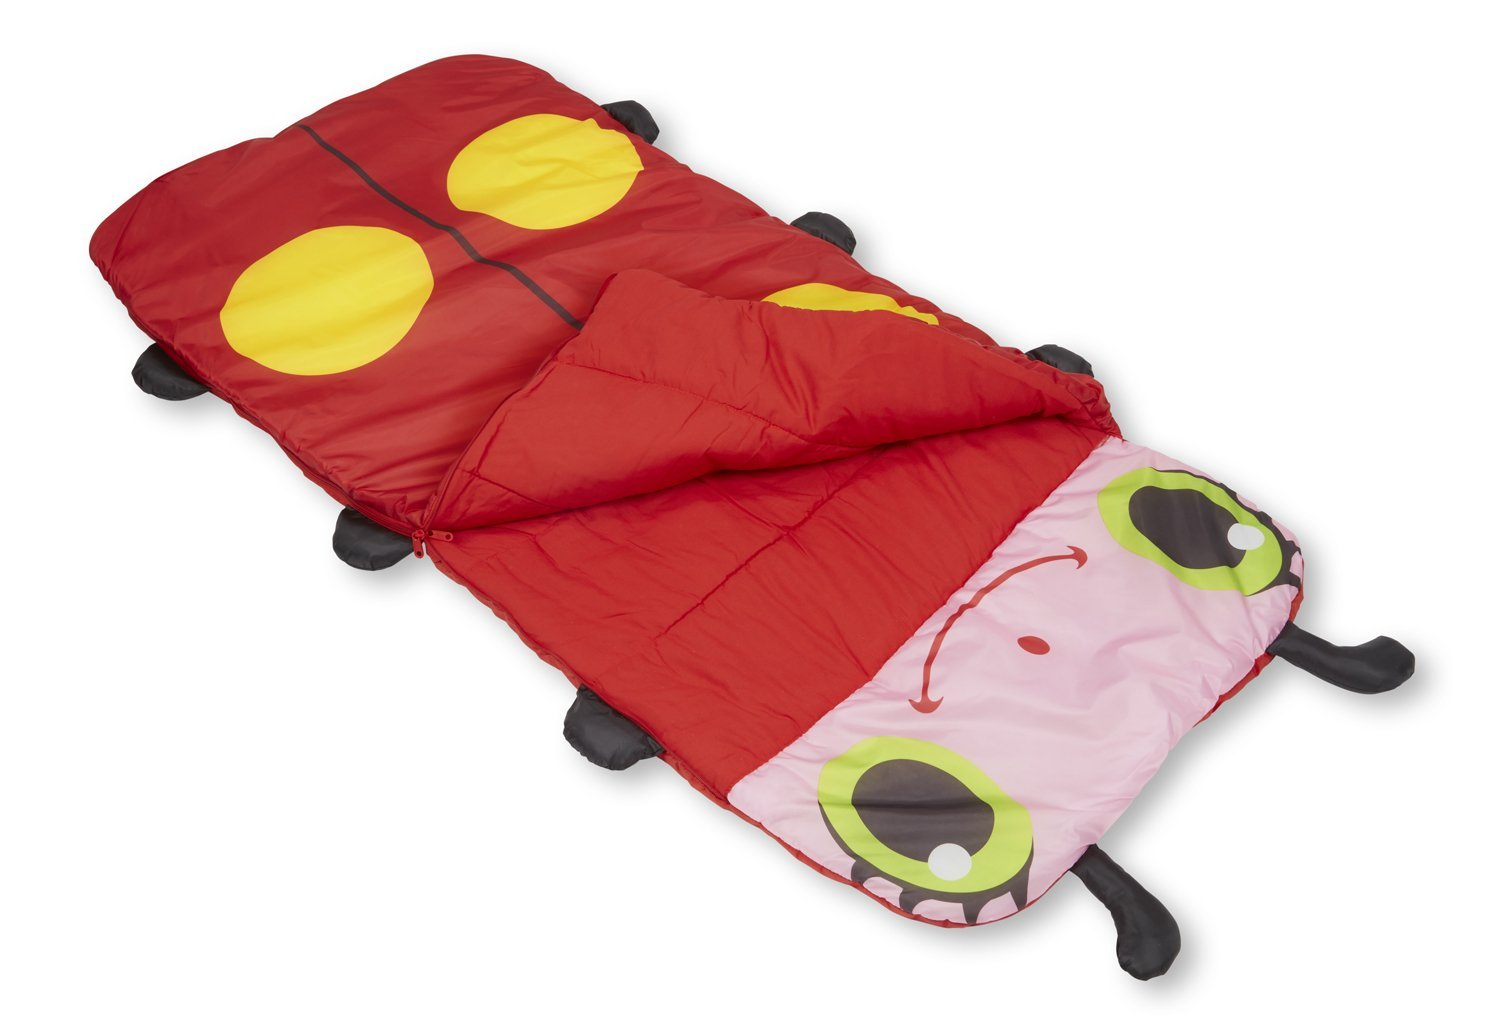 Melissa & Doug Mollie Ladybug Sleeping Bag